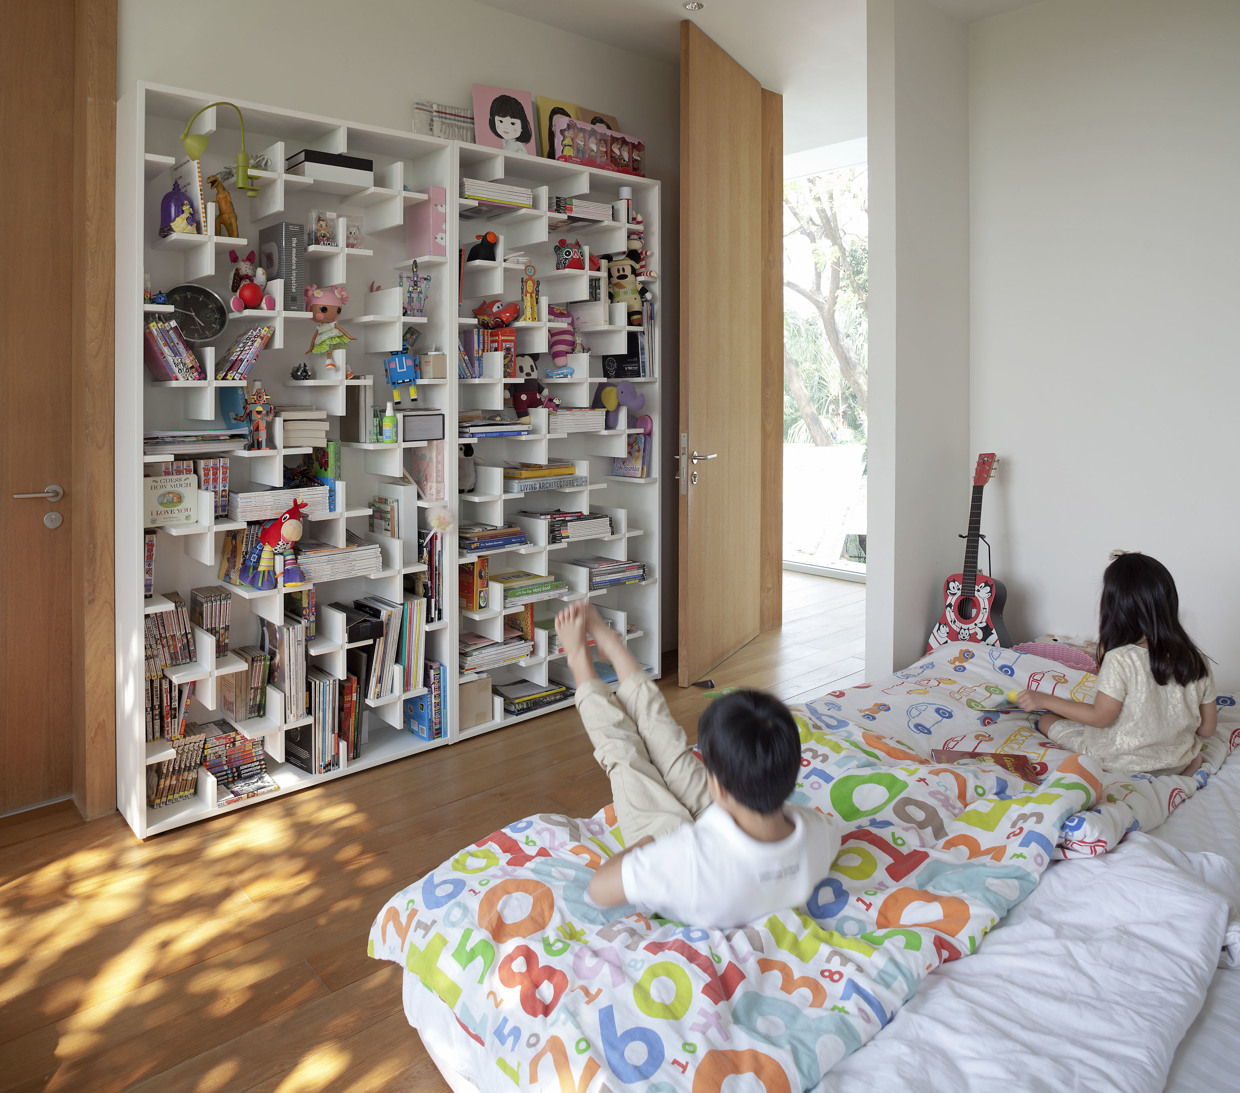 Creative kids room interior design ideas for Rooms by design